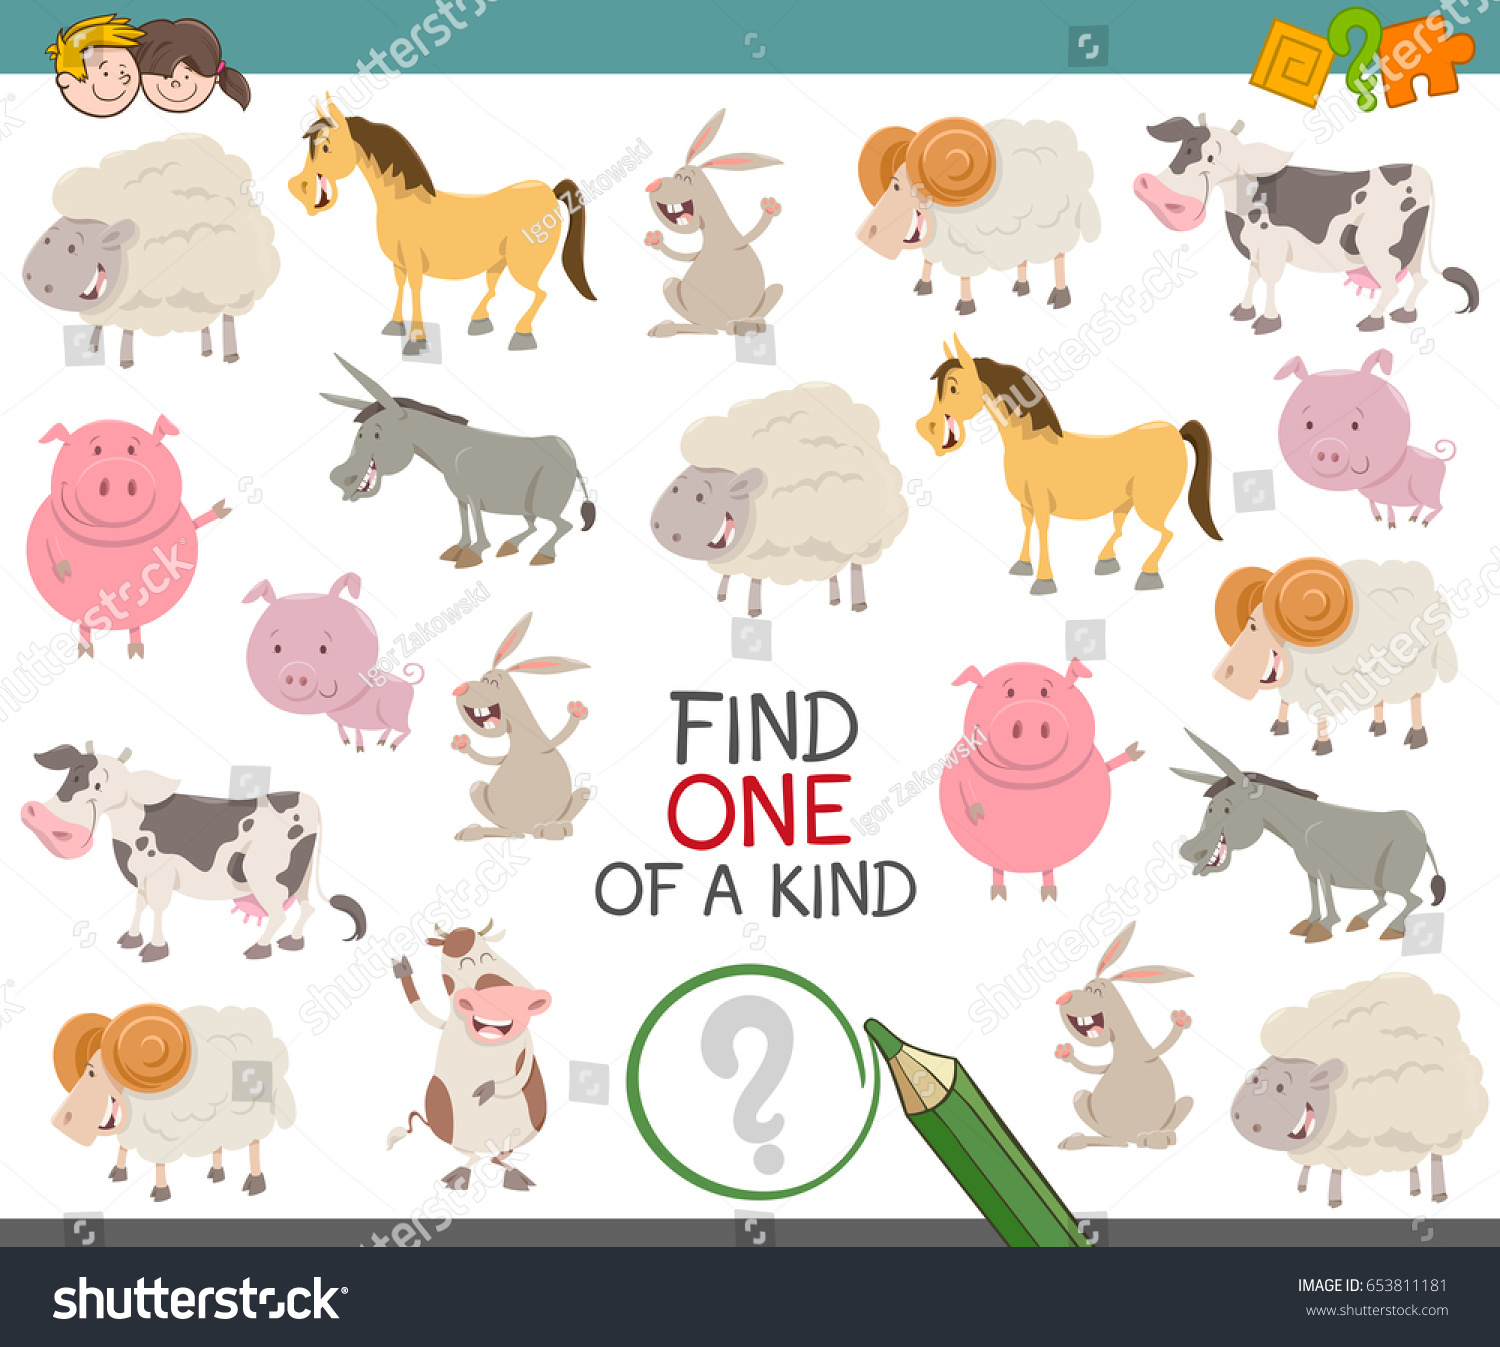 Cartoon Illustration Find One Kind Educational Stock